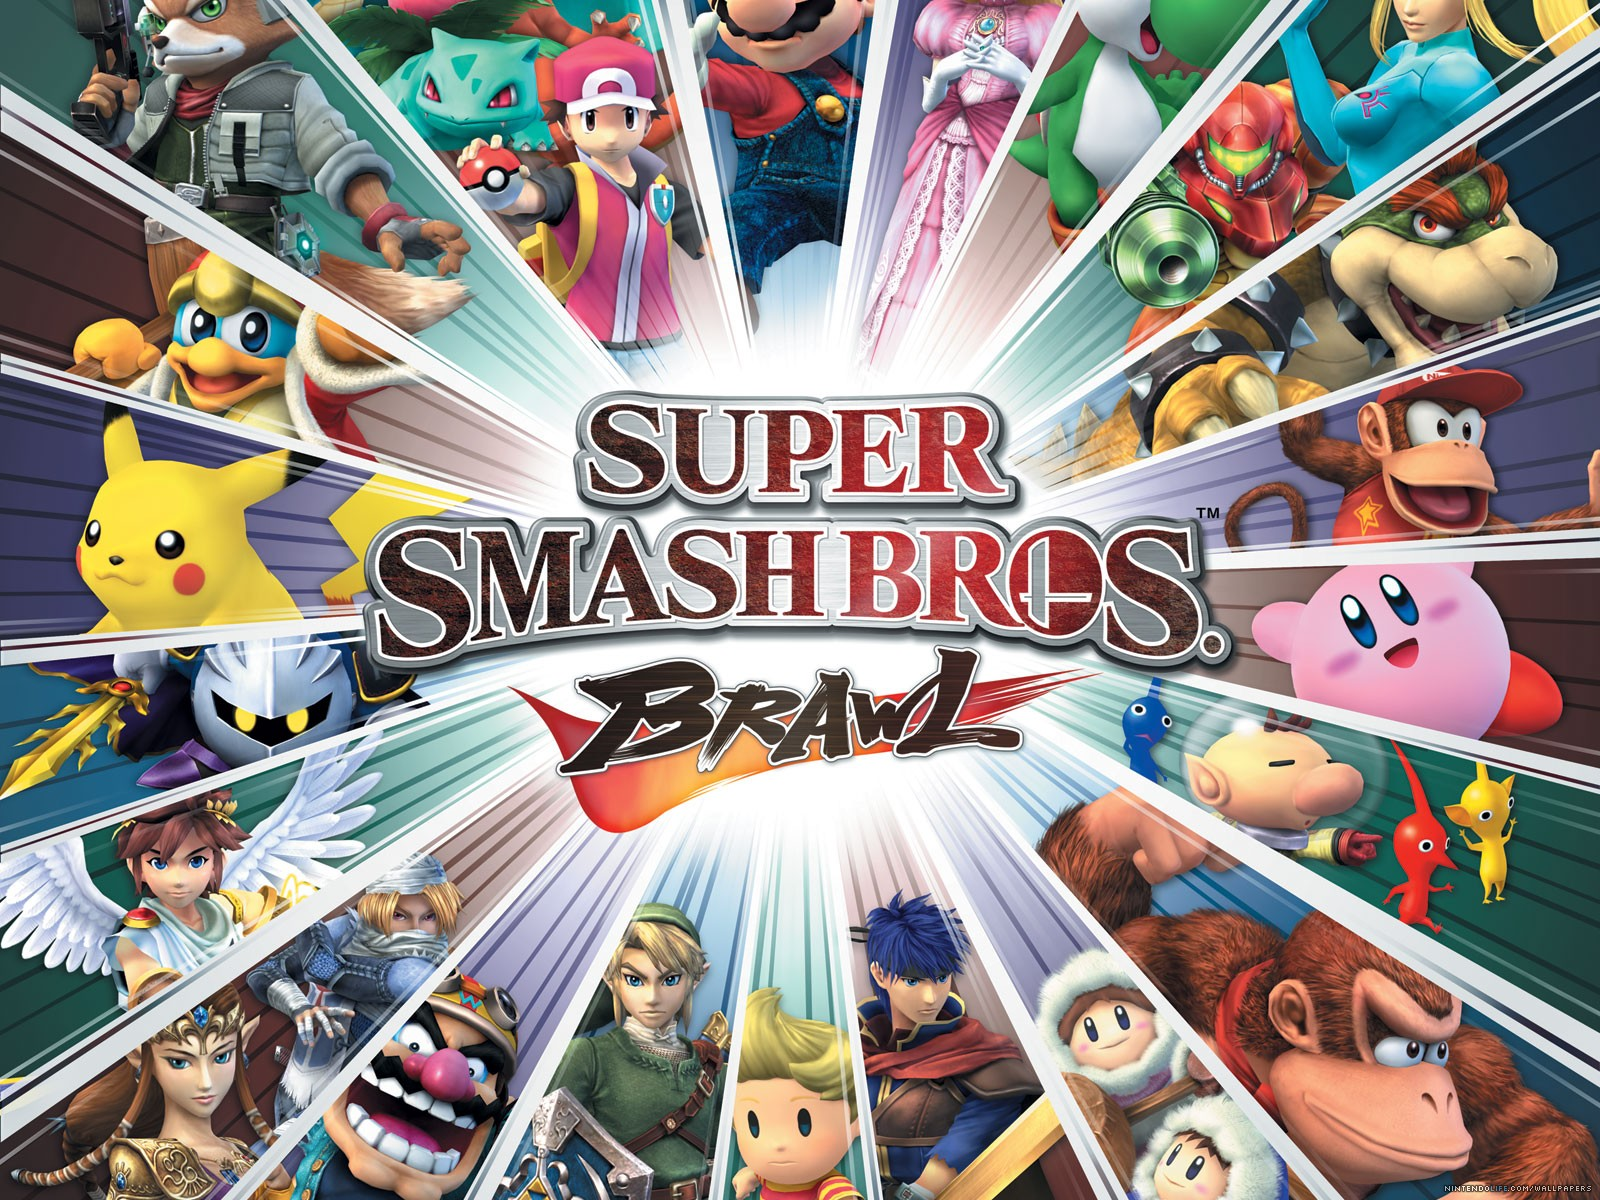 Super smash bros brawl xxx